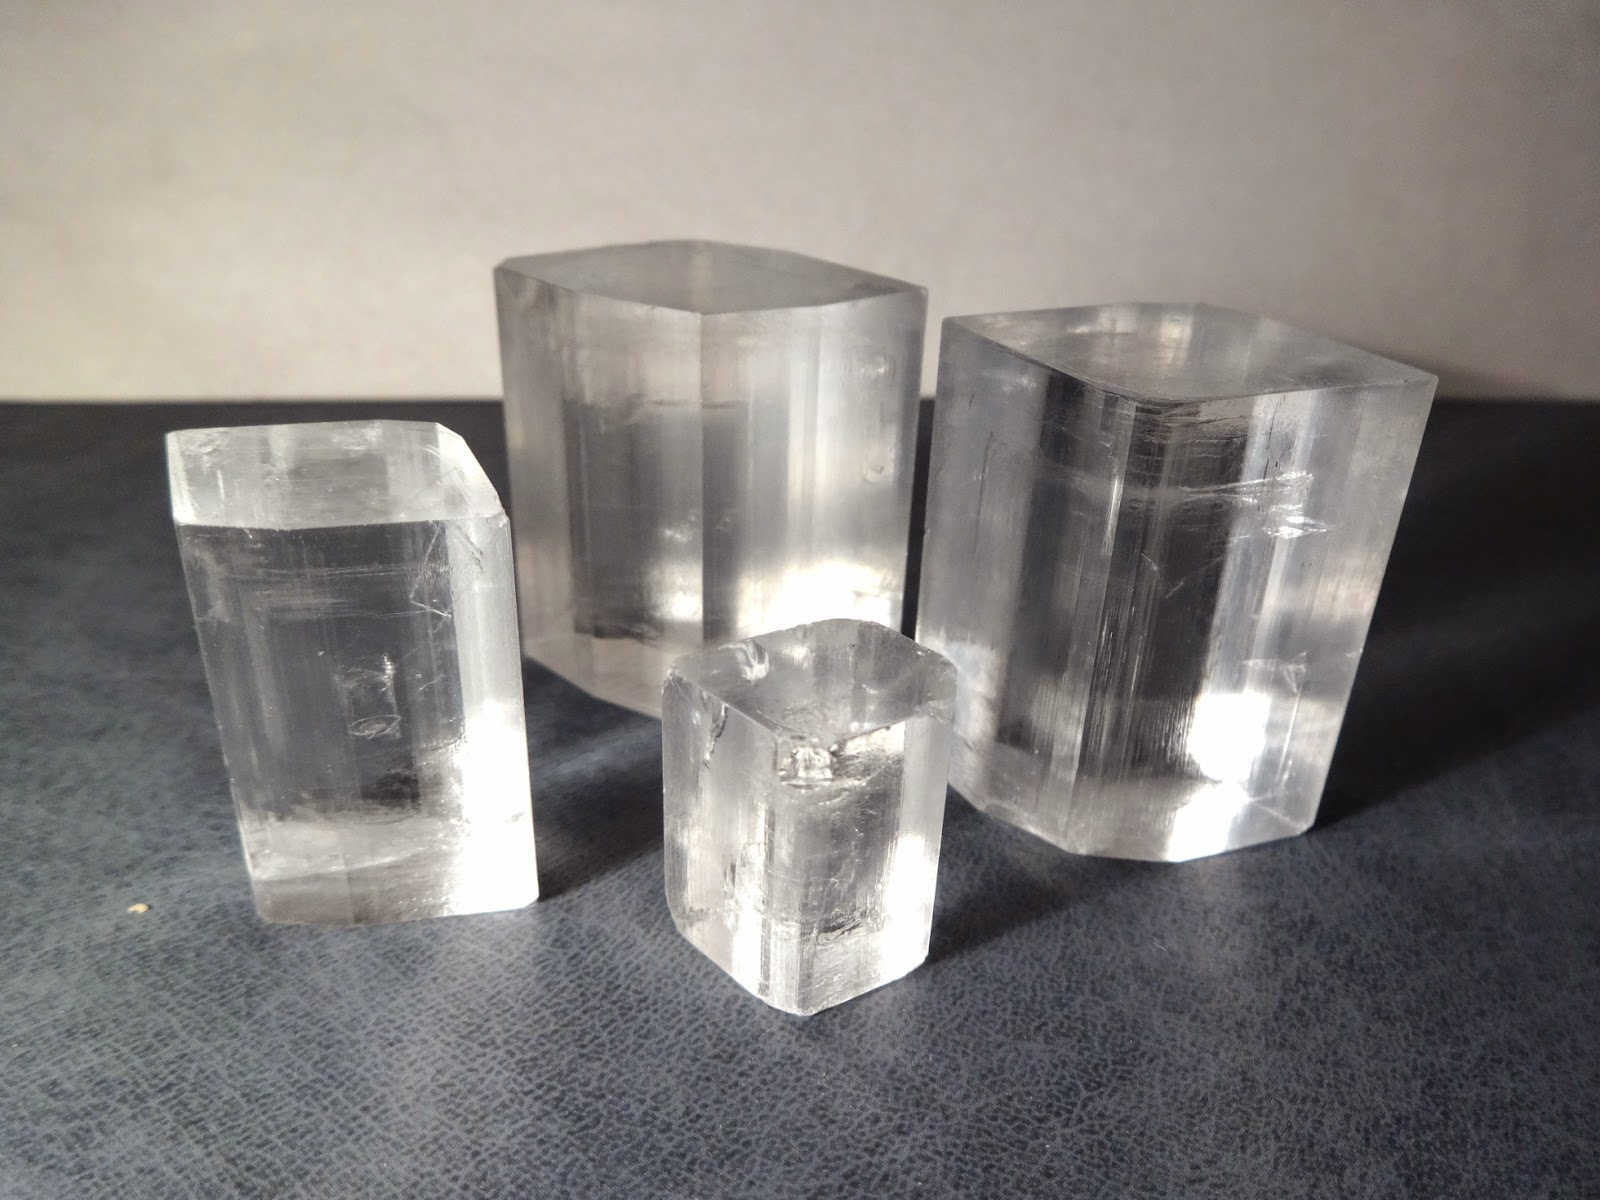 How to grow a crystal of salt at home